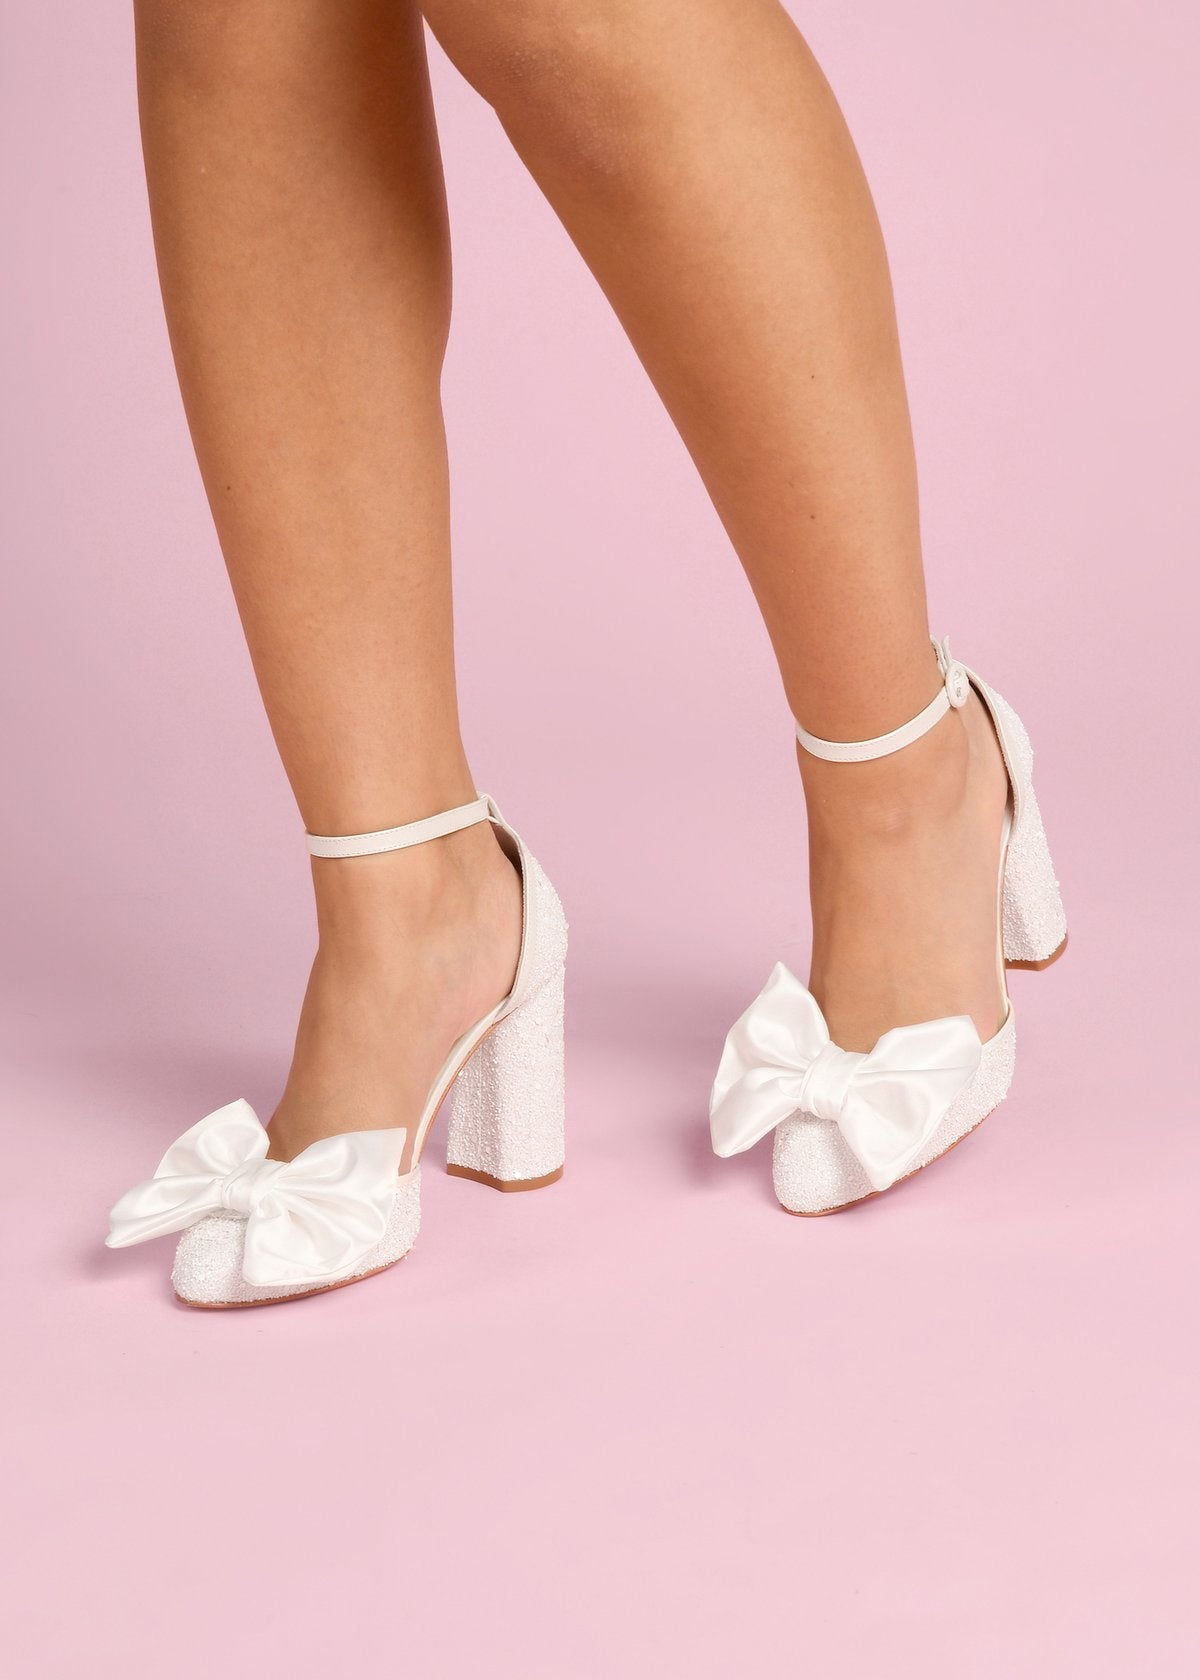 Juniper - Pearl Bow by Charlotte Mills Wedding Shoes